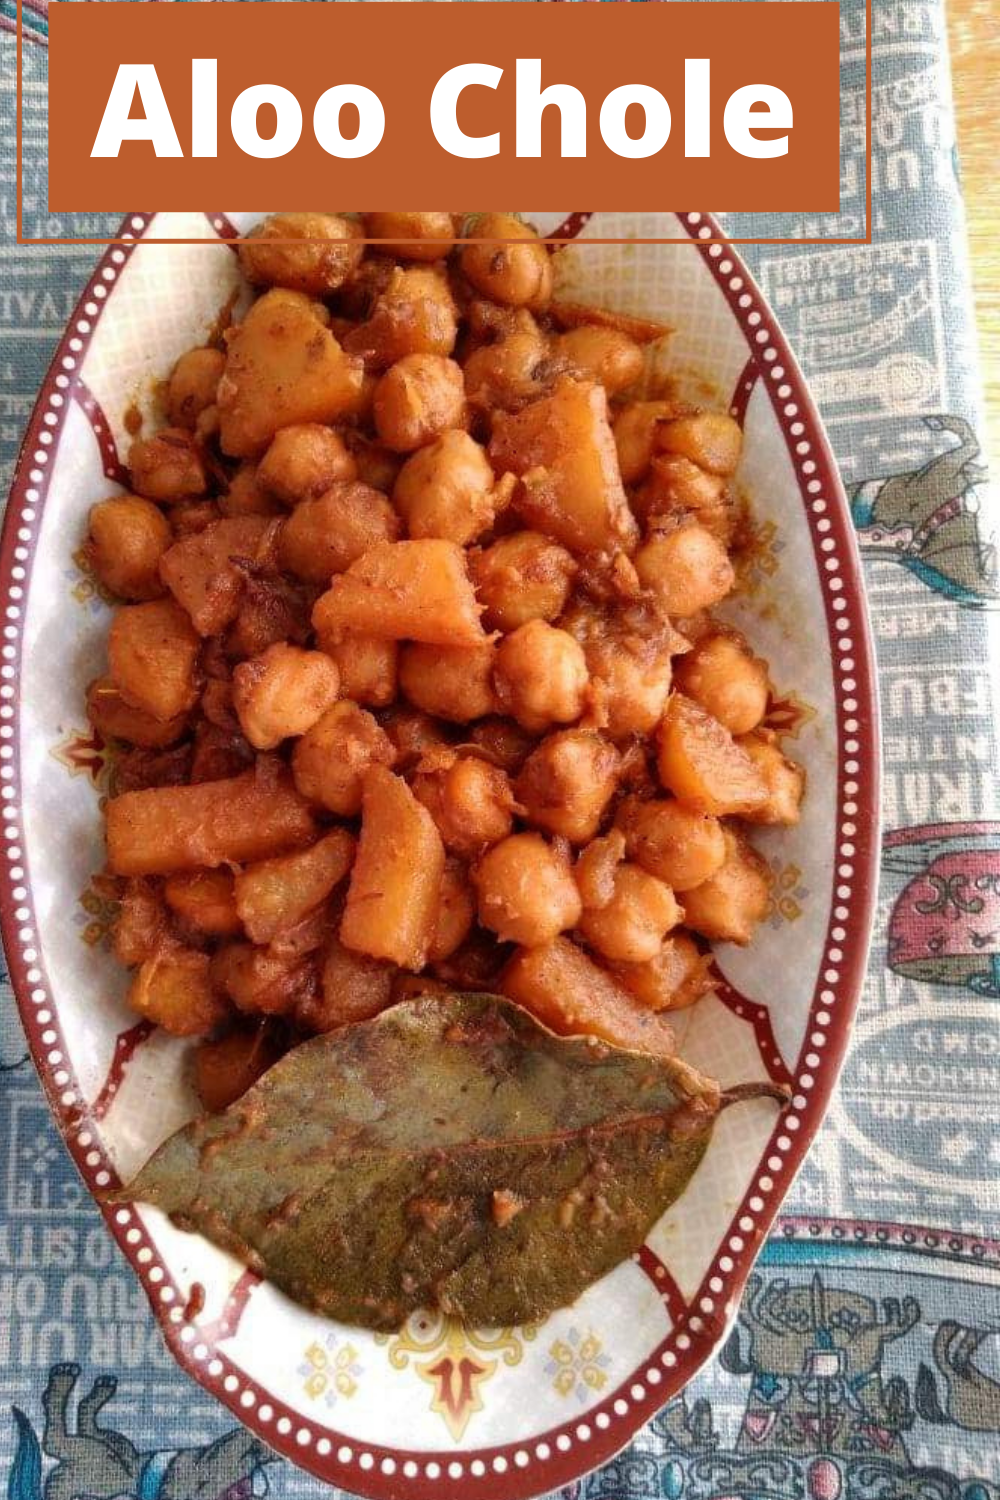 Aloo chole recipe is a Indian dish that is mixed with chickpeas, potatoes, and spices. It is a vegetarian dish which is best serve with rice or roti flatbread.